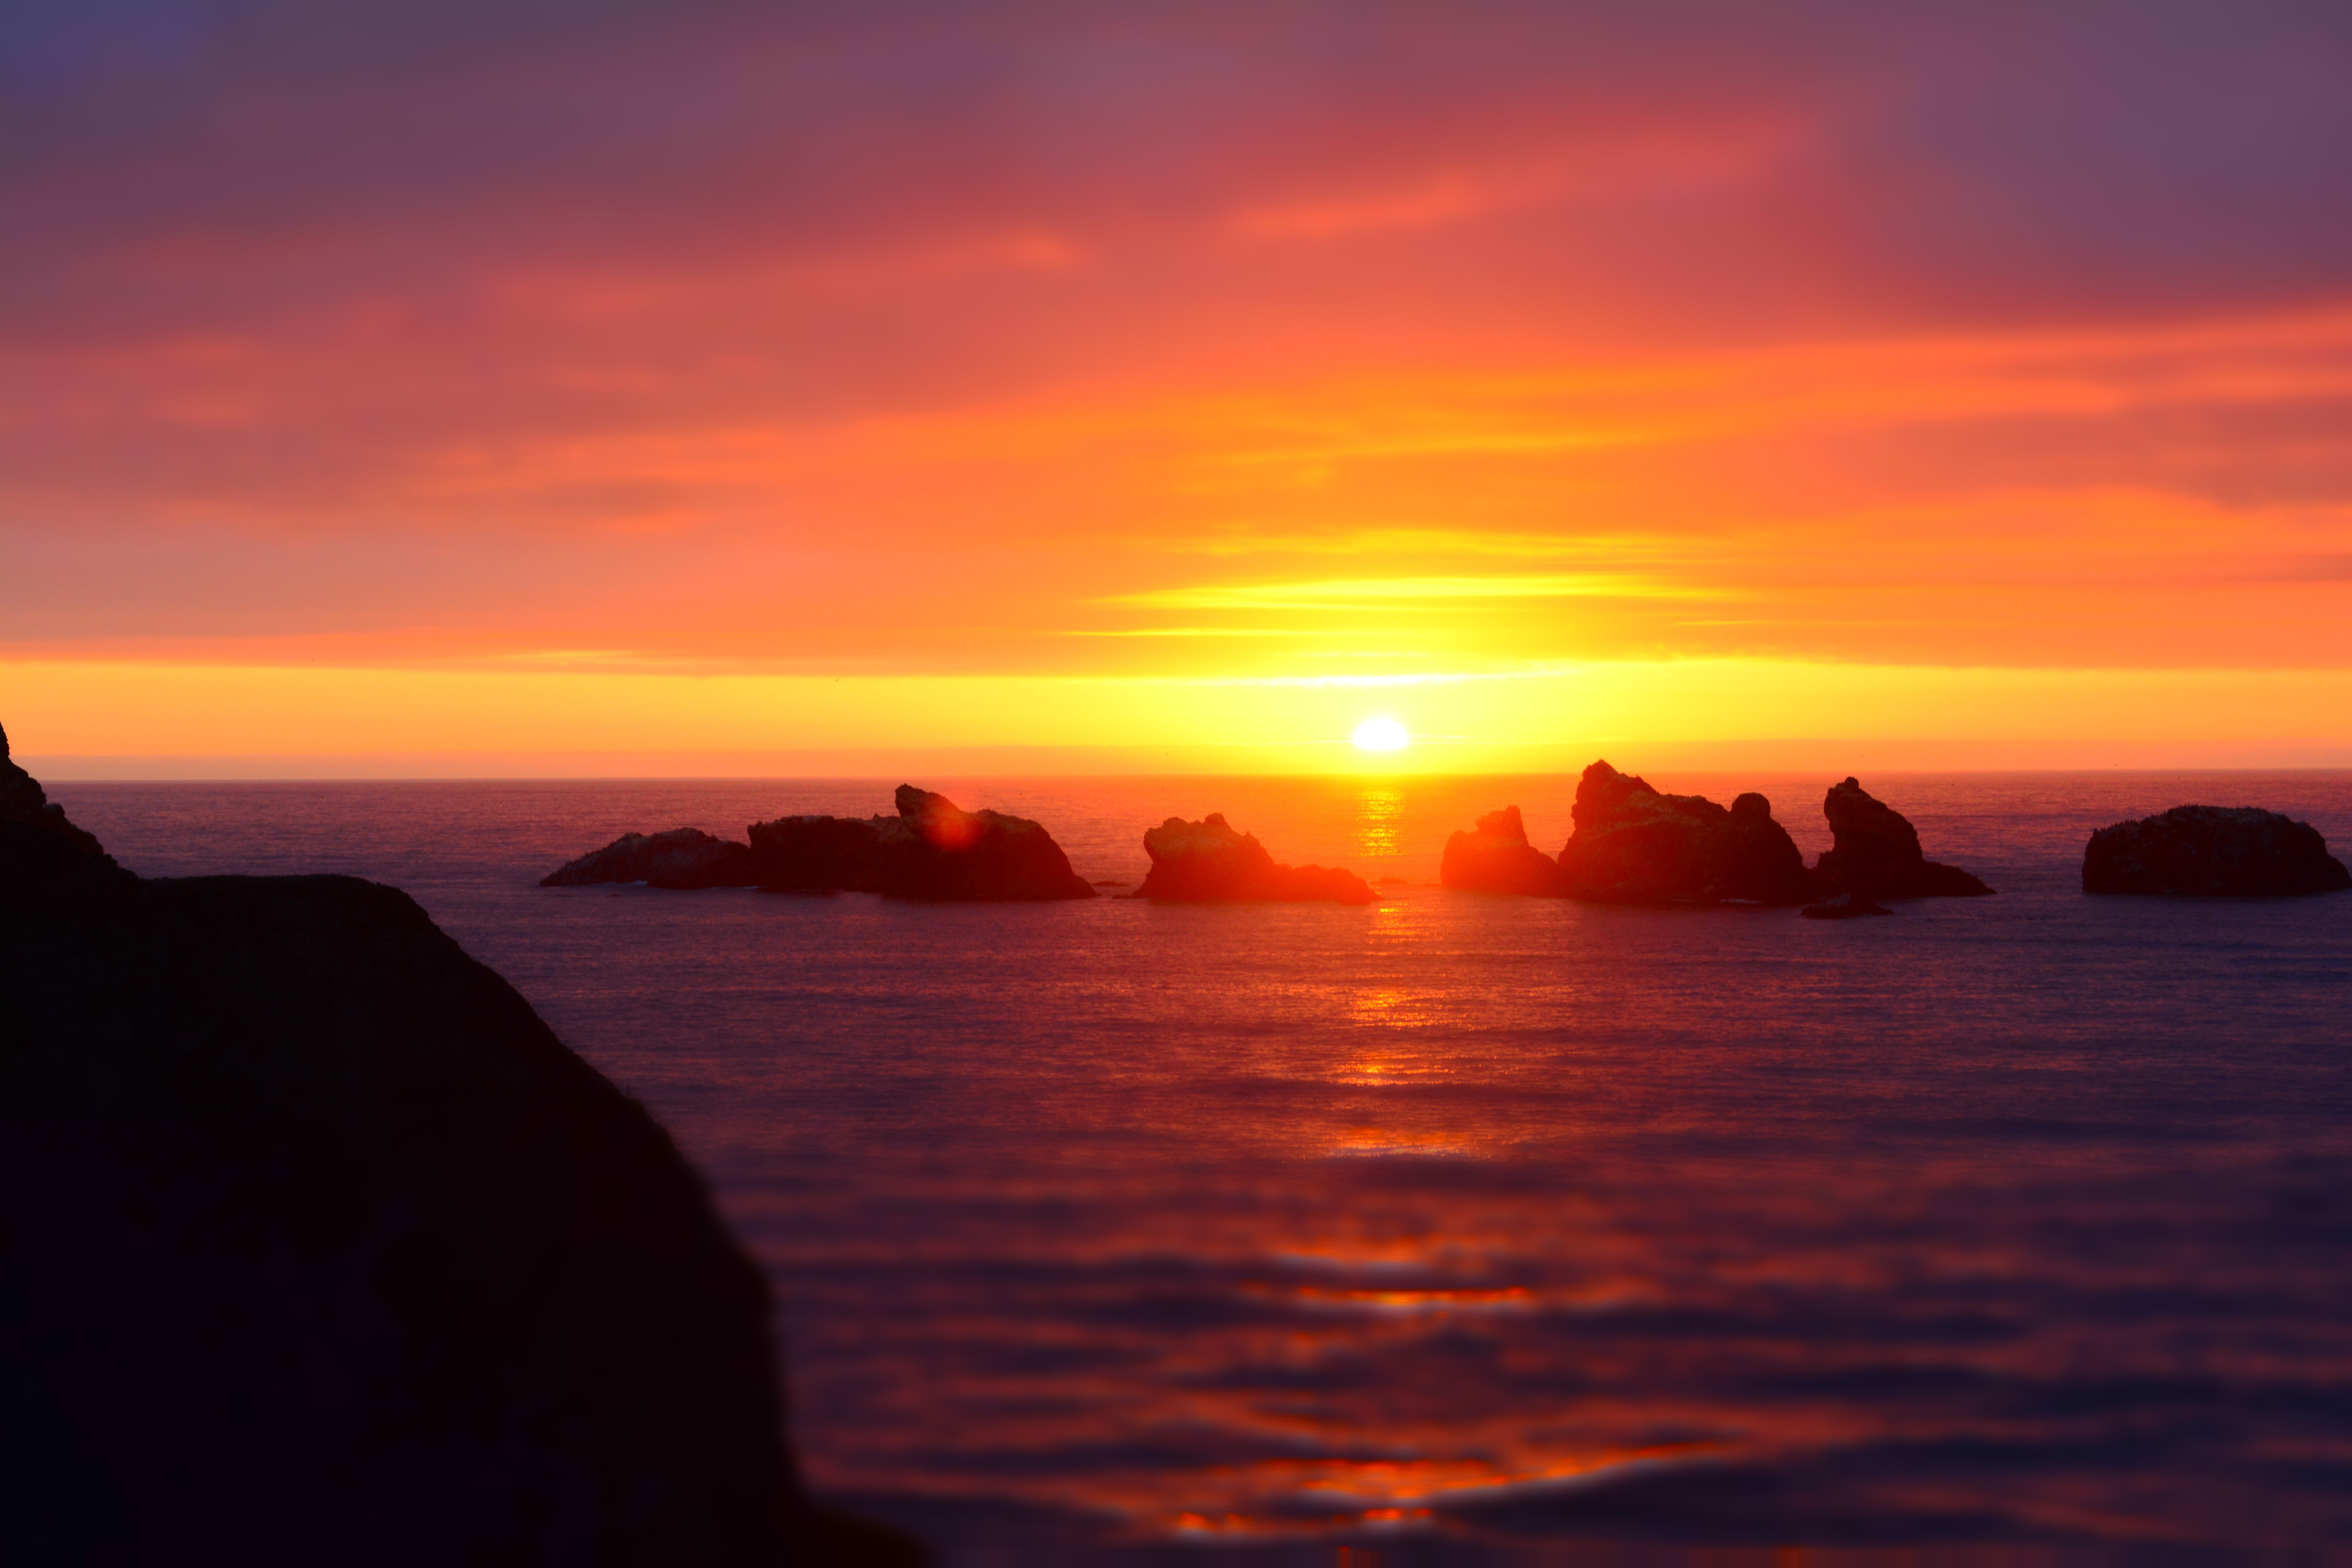 The sun setting on the horizon of the ocean at Bandon, with silhouetted rocks in the foreground, Good Morning Wednesday Quotes